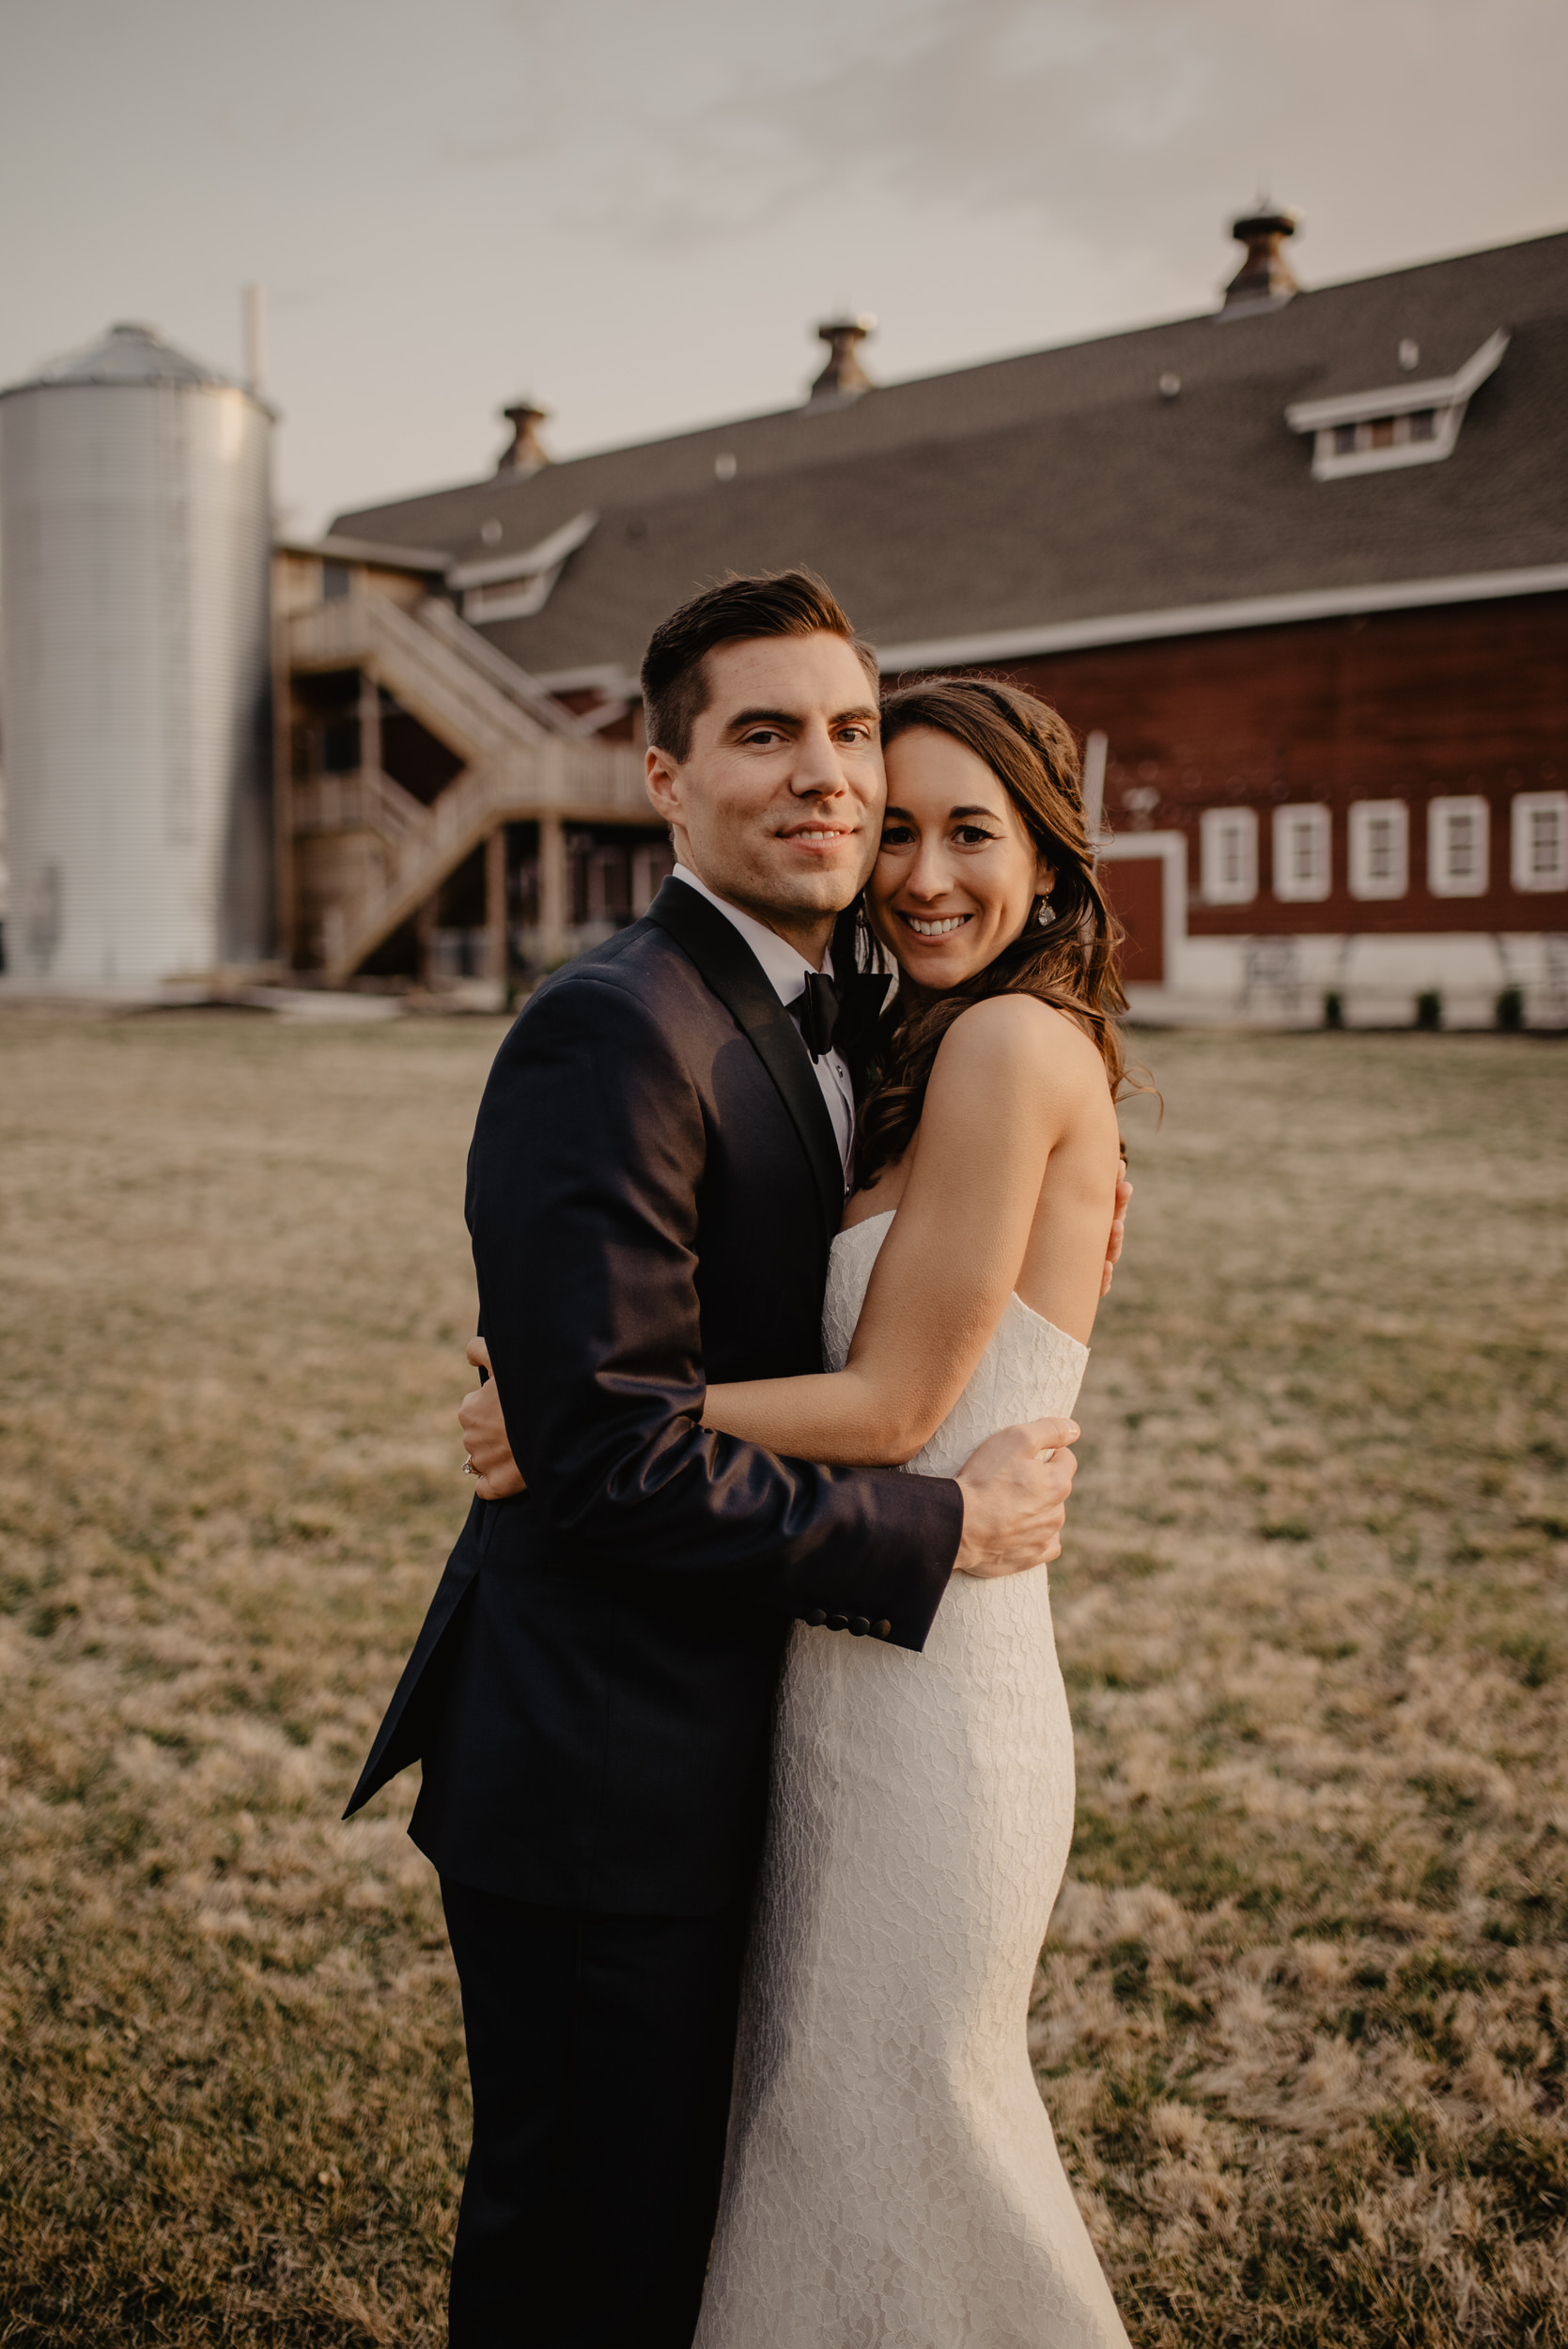 The Barn at the Ackerhurst Dairy Farm Omaha Nebraska Wedding Kaylie Sirek Photography094.jpg